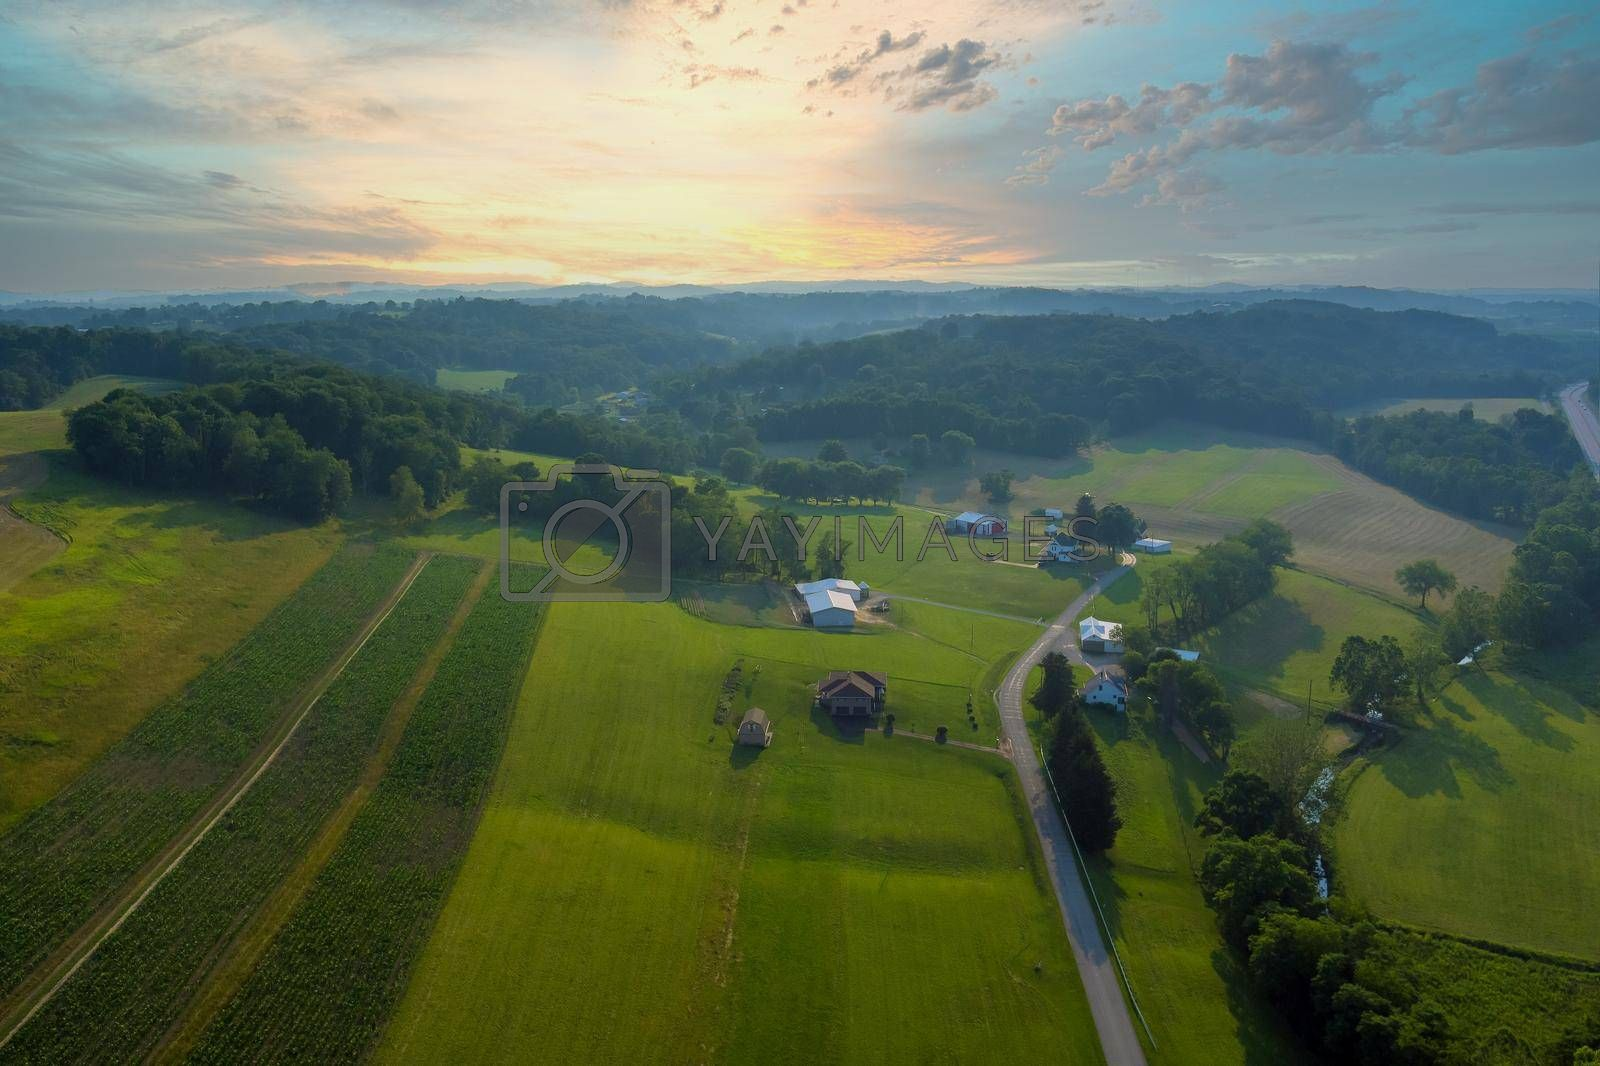 Royalty free image of Bentleyville town Landscape of villages on the hills farm house with Pennsylvania, US by ungvar